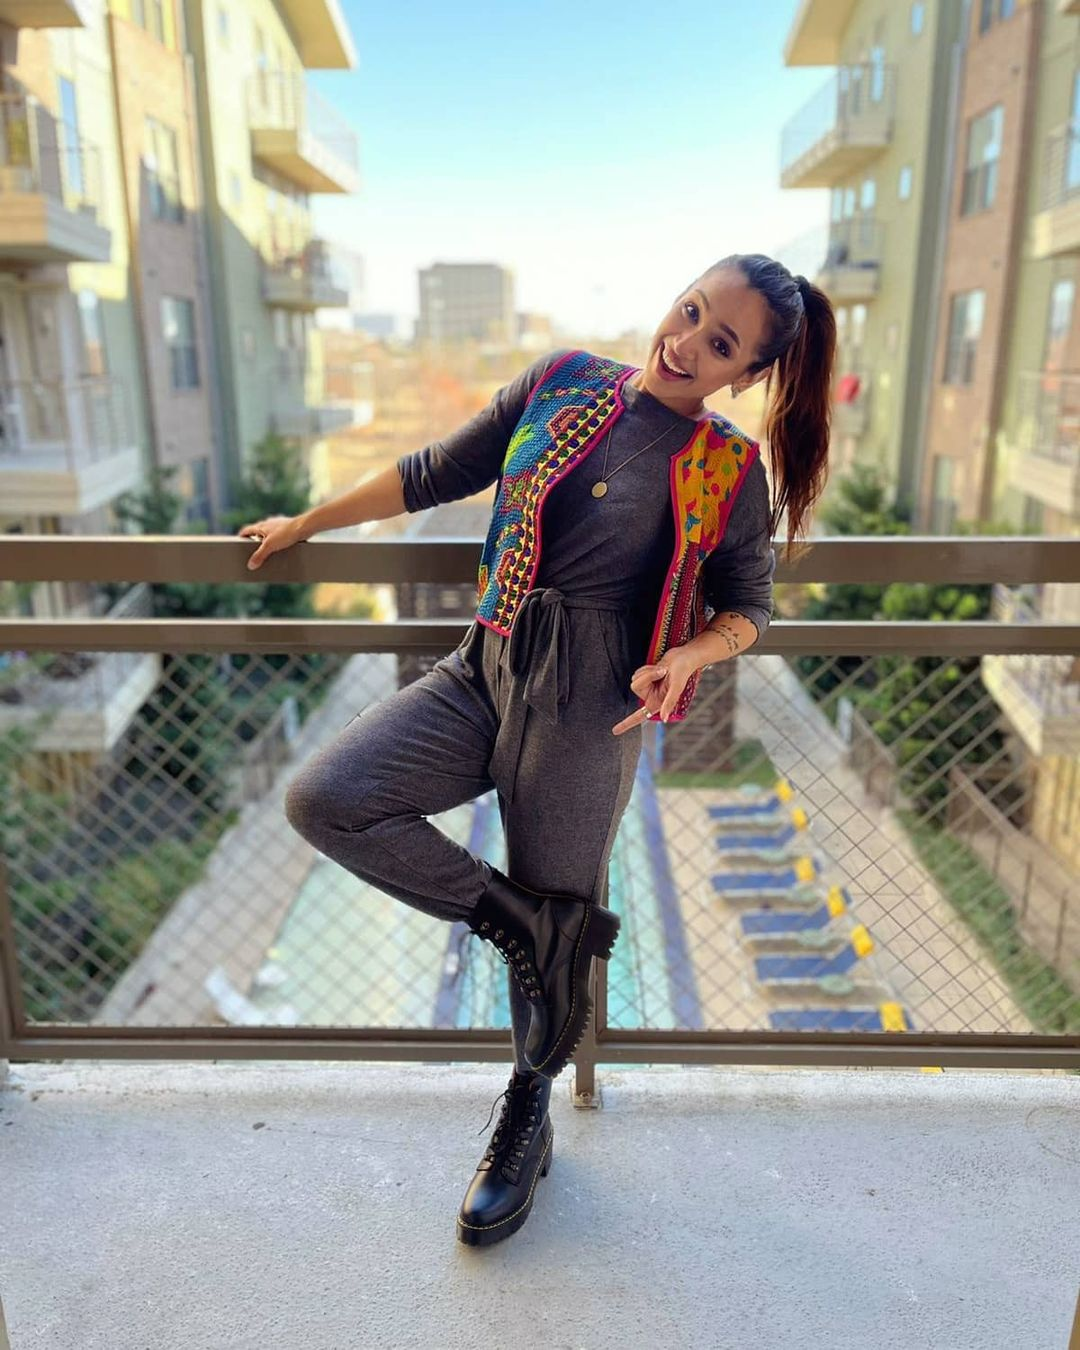 Actress Faryal Mehmood Latest Pictures with Friends from USA